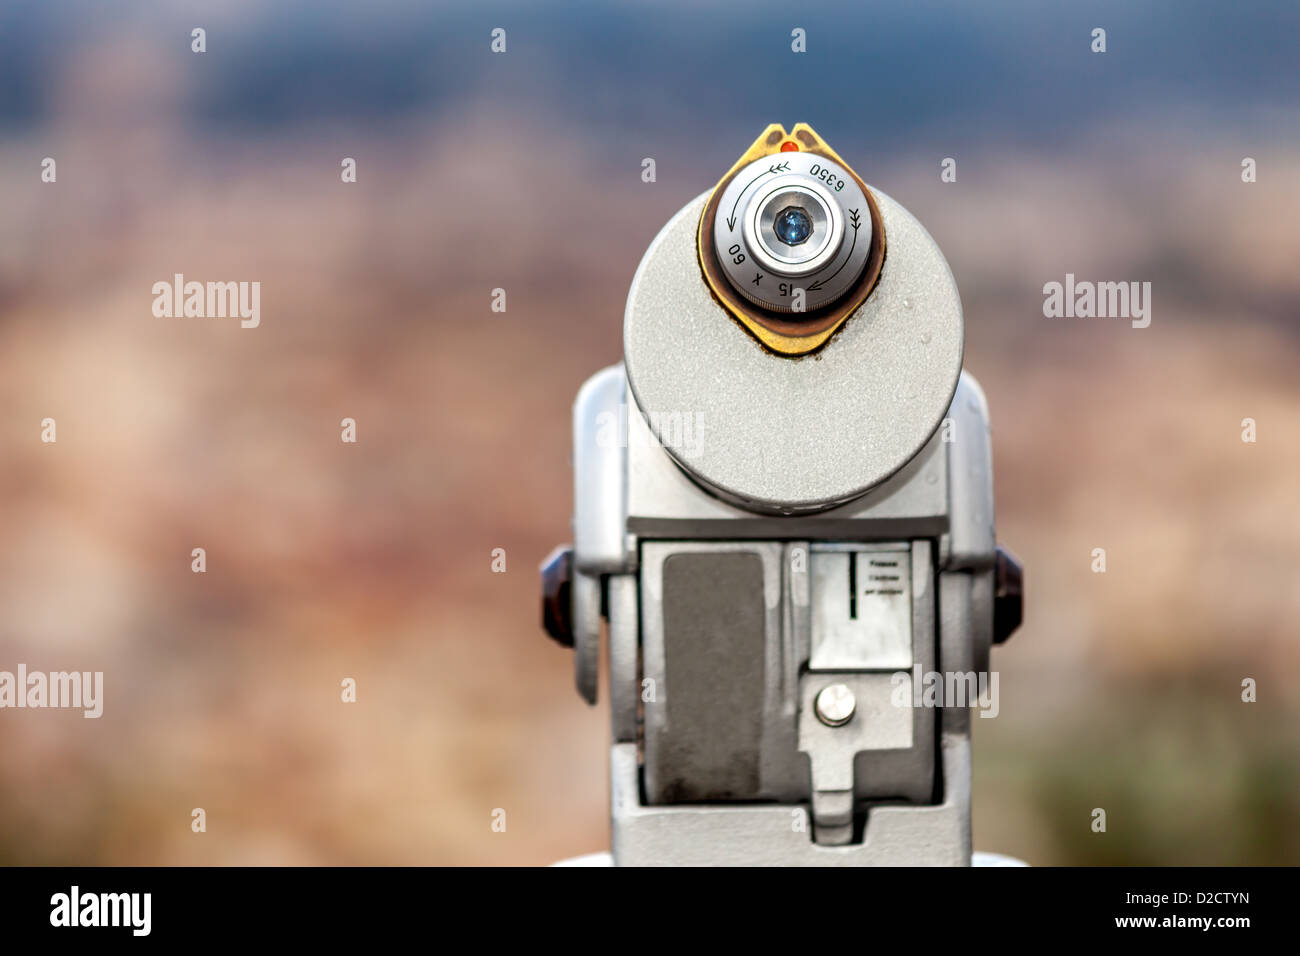 Coin Operated Telescope - Stock Image